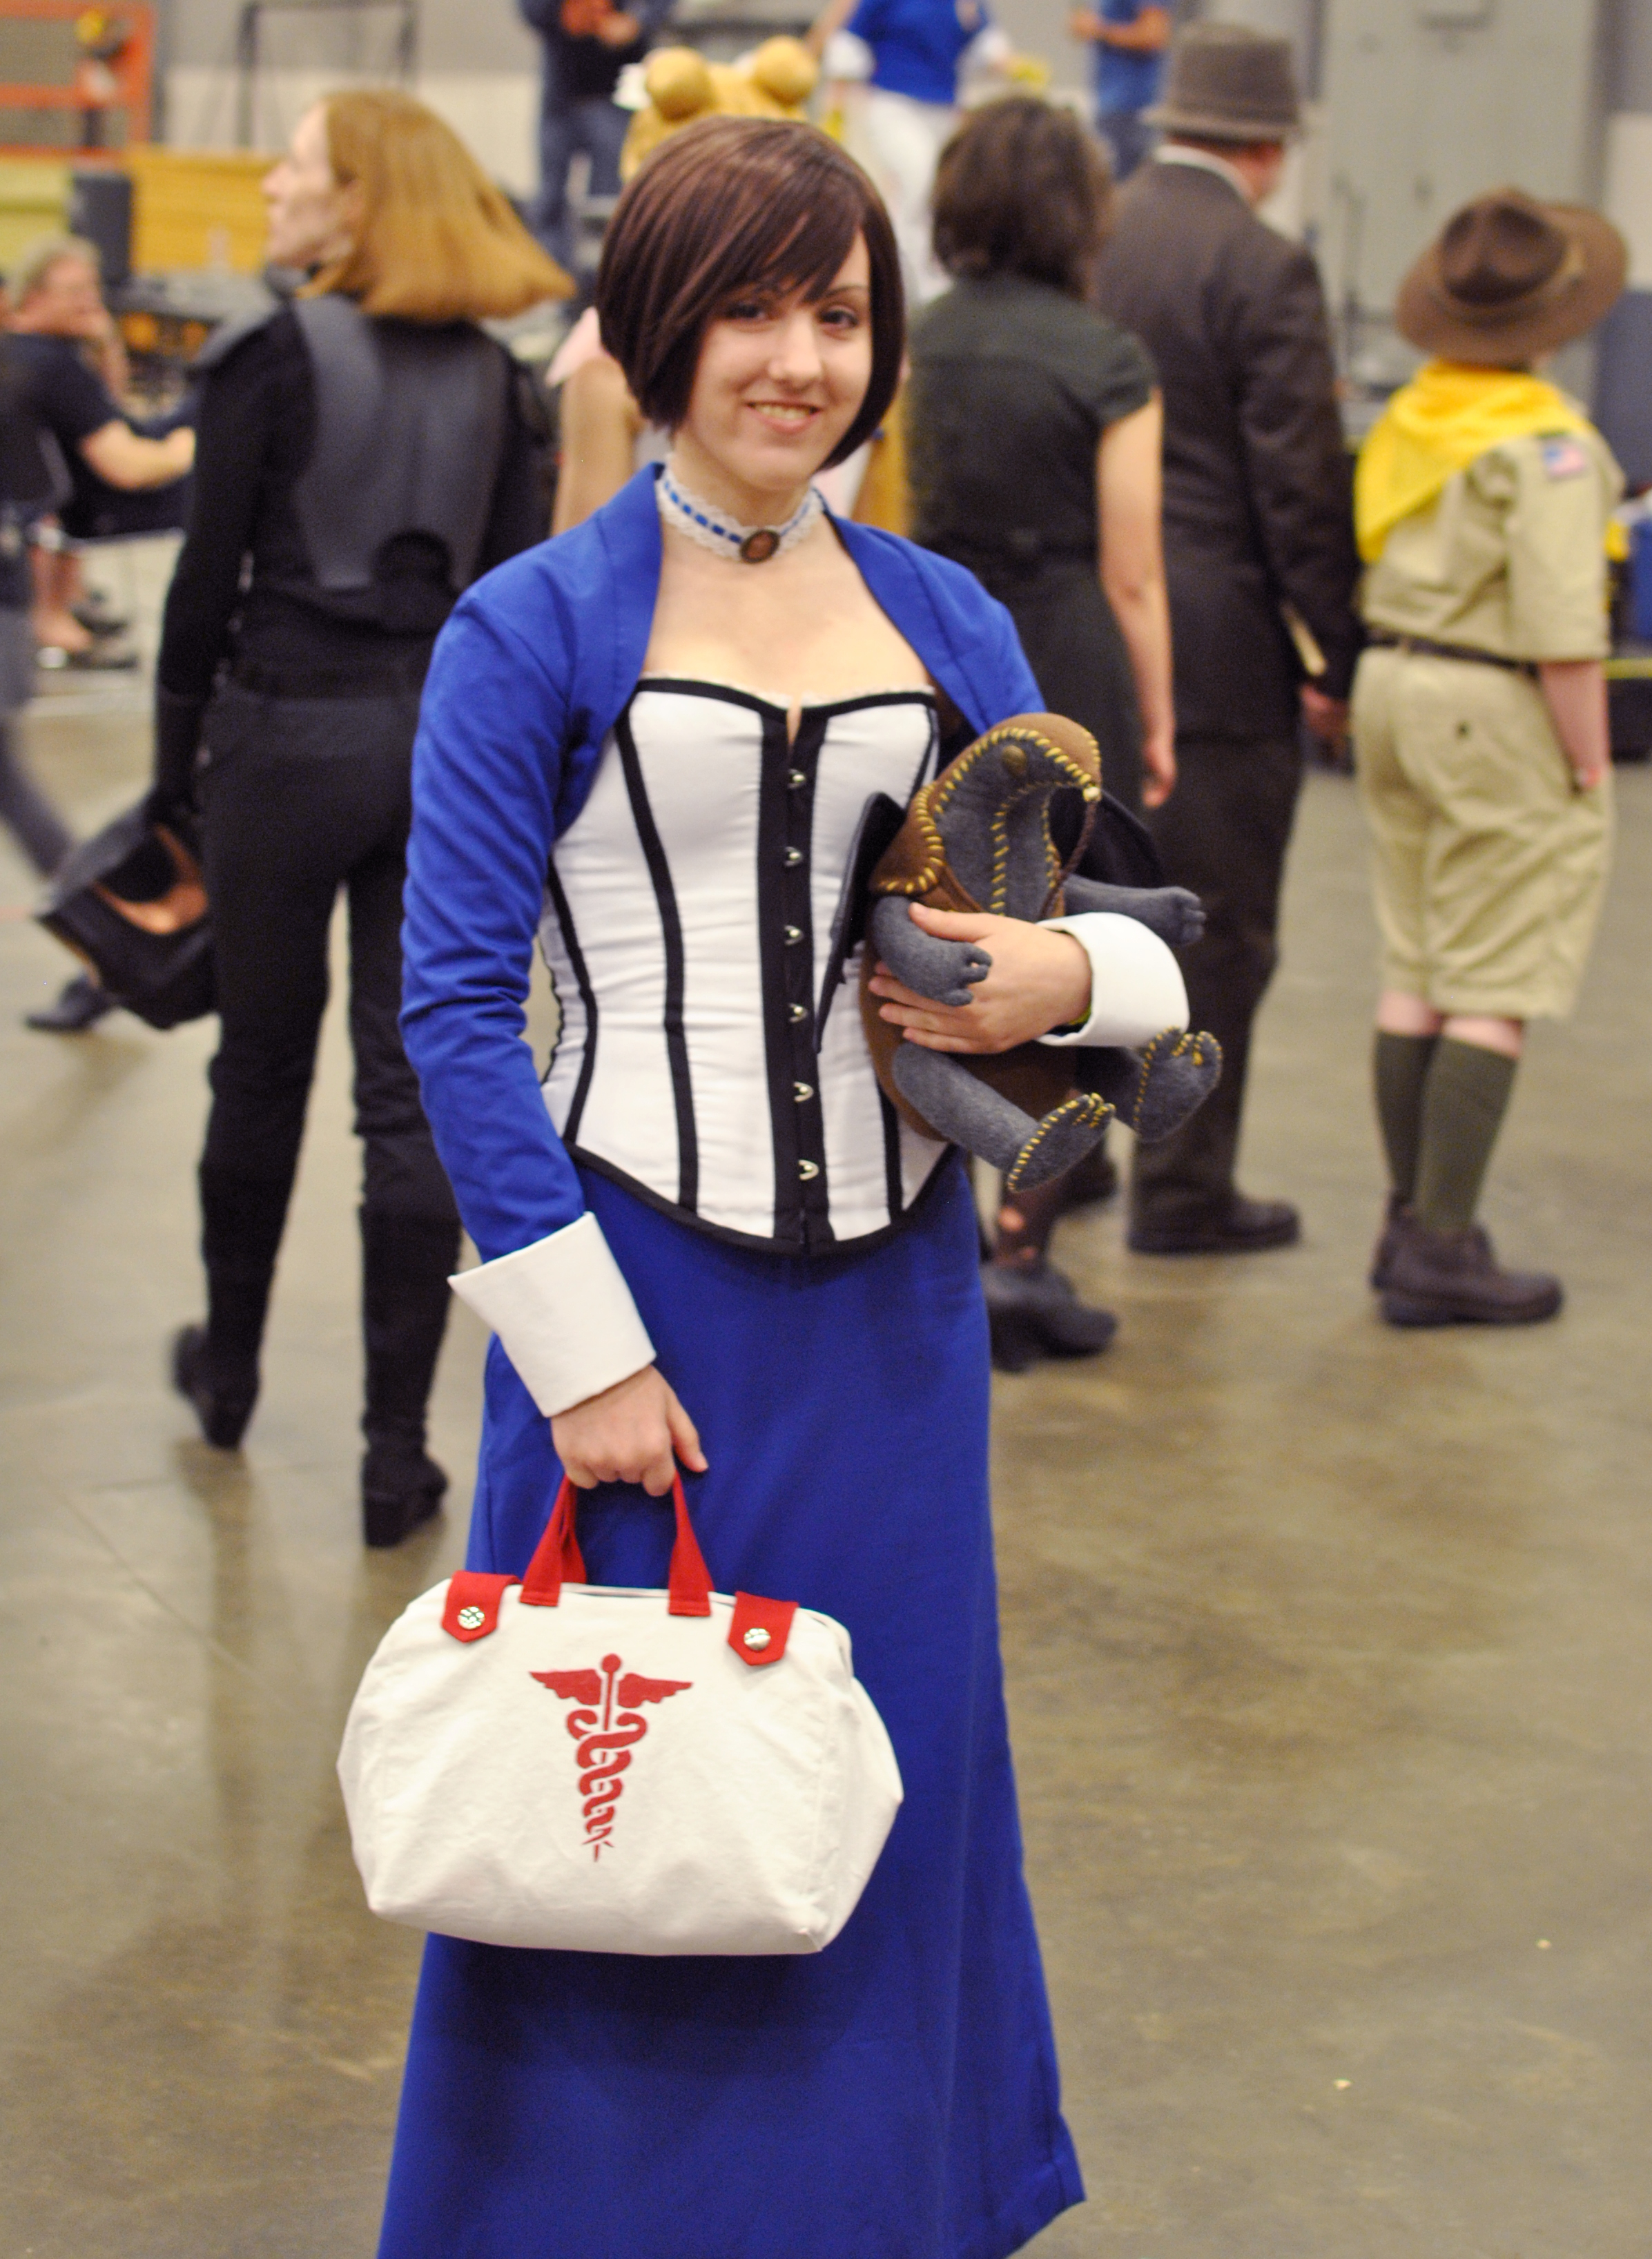 Elizabeth's medicine bag would prove useless for treating the victims of a nuclear bomb, however, her ability to tear holes into alternate universes could provide us with a way to see how often humanity has fallen to this seemingly inevitable fate.